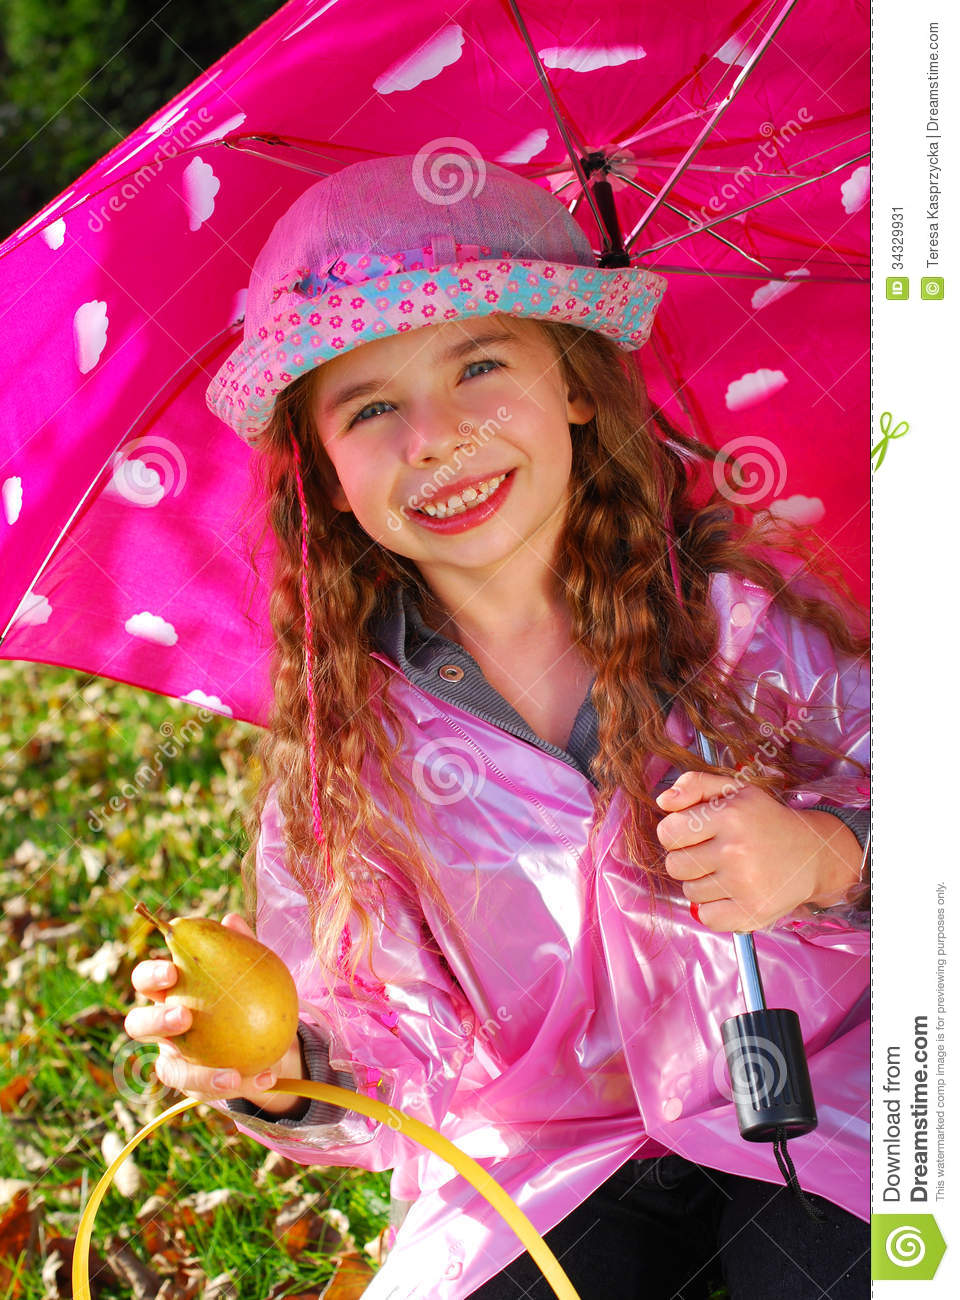 Girl With The Blog: Beautiful Young Girl With Umbrella Stock Image